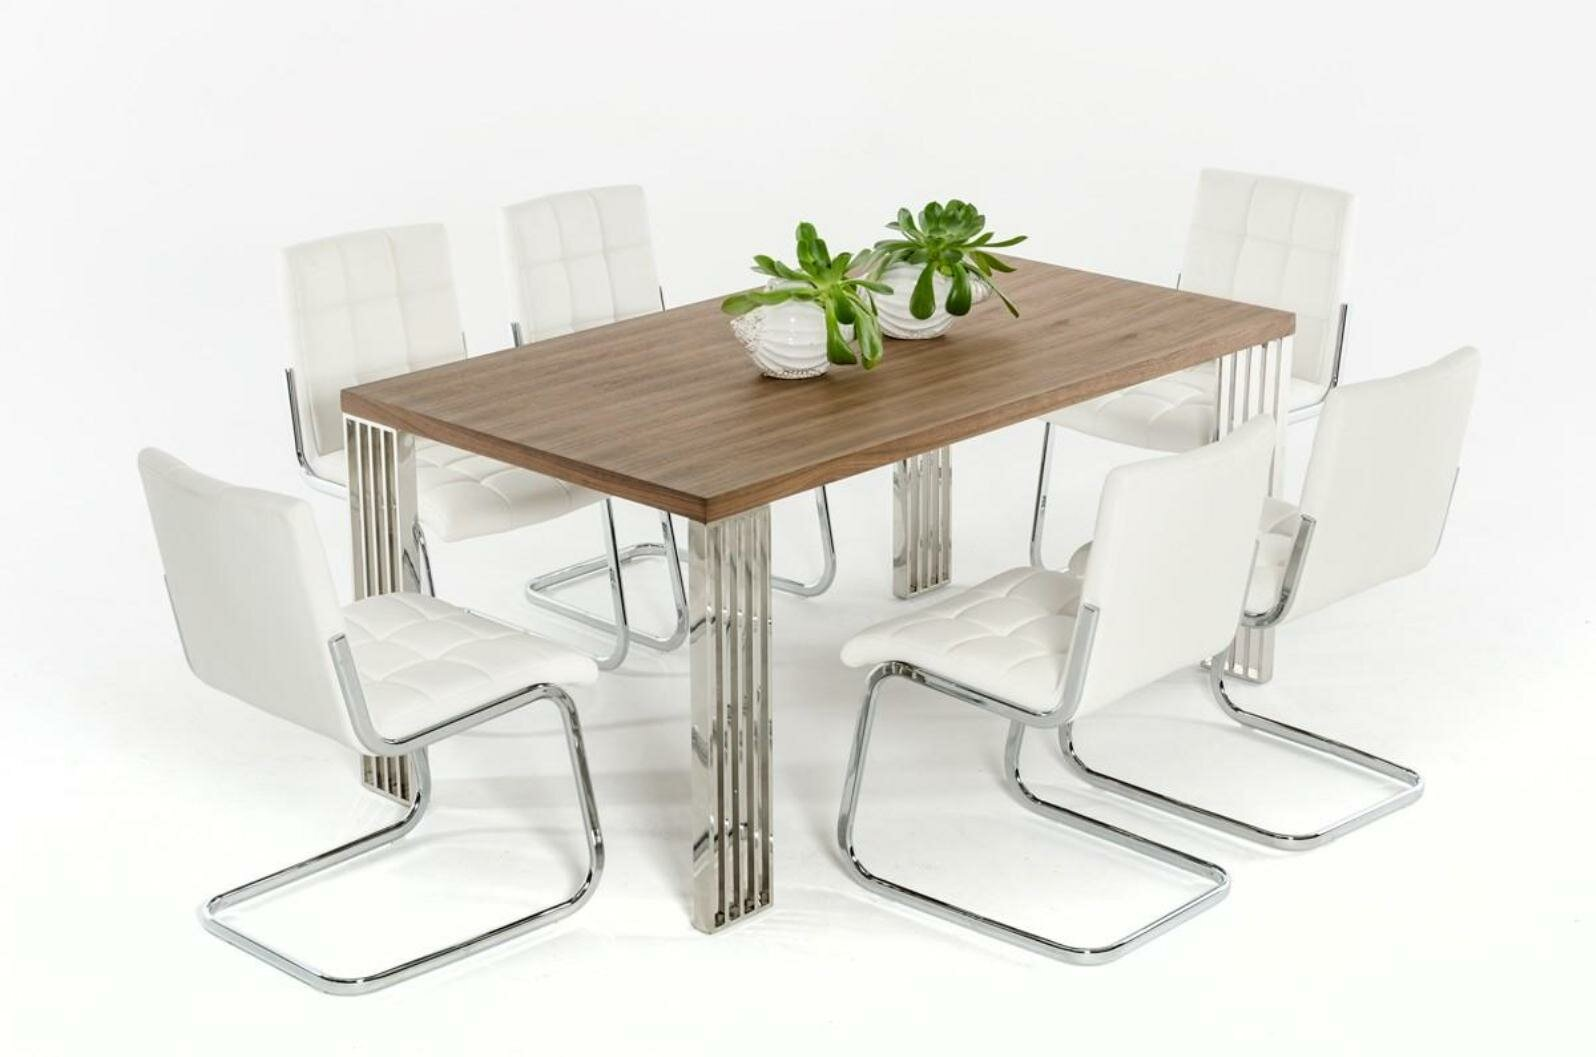 Clower Wood Top Dining Table